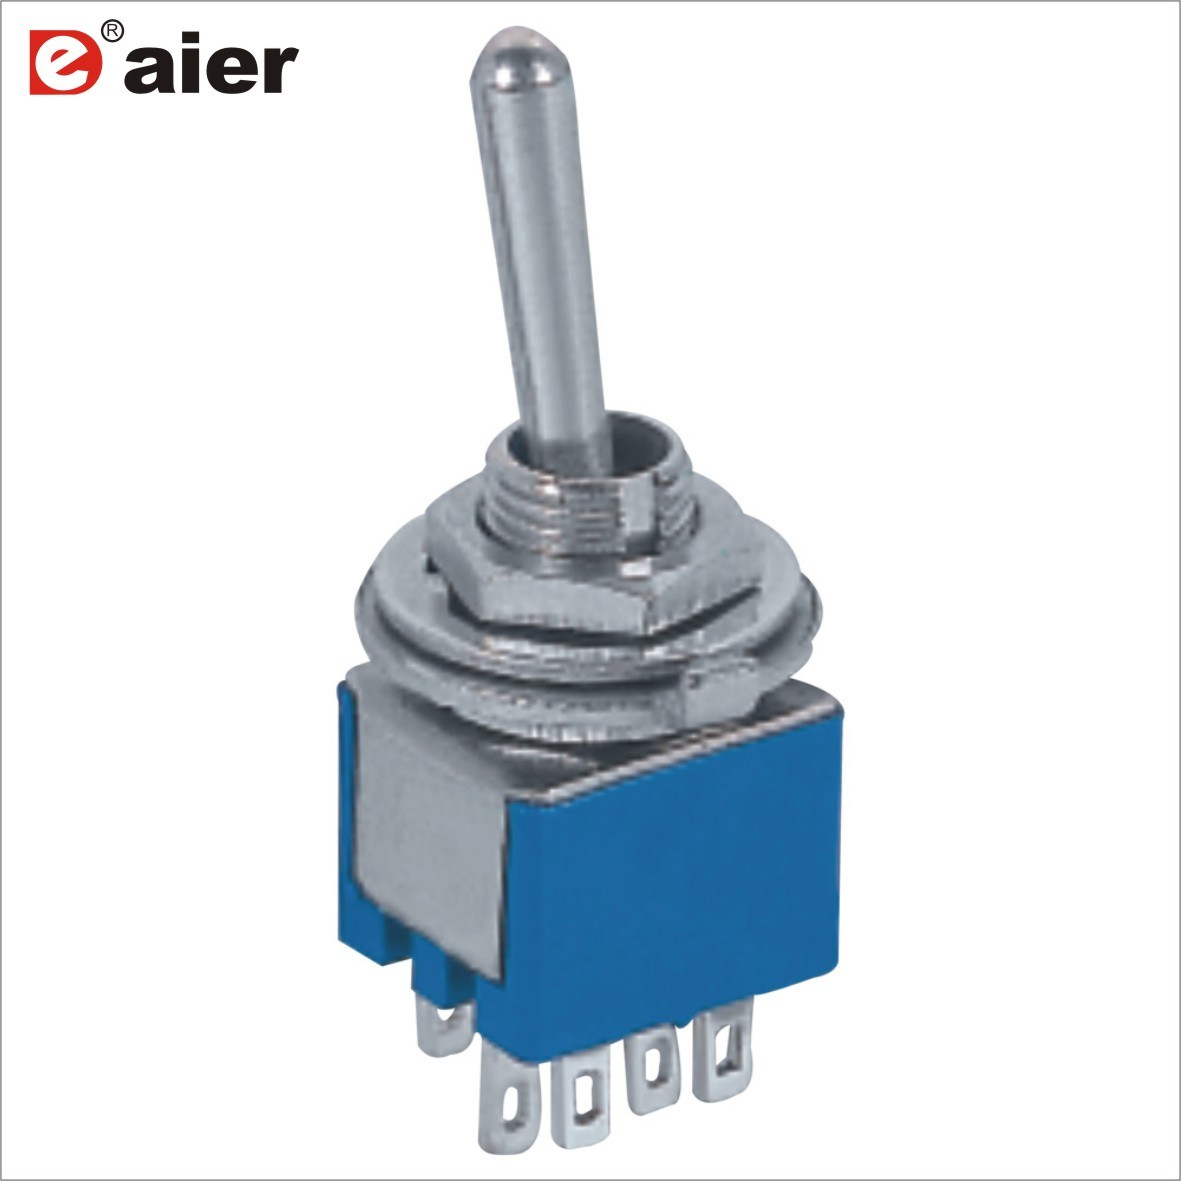 China Dpdt Toggle Switch, Dpdt Toggle Switch Manufacturers ...